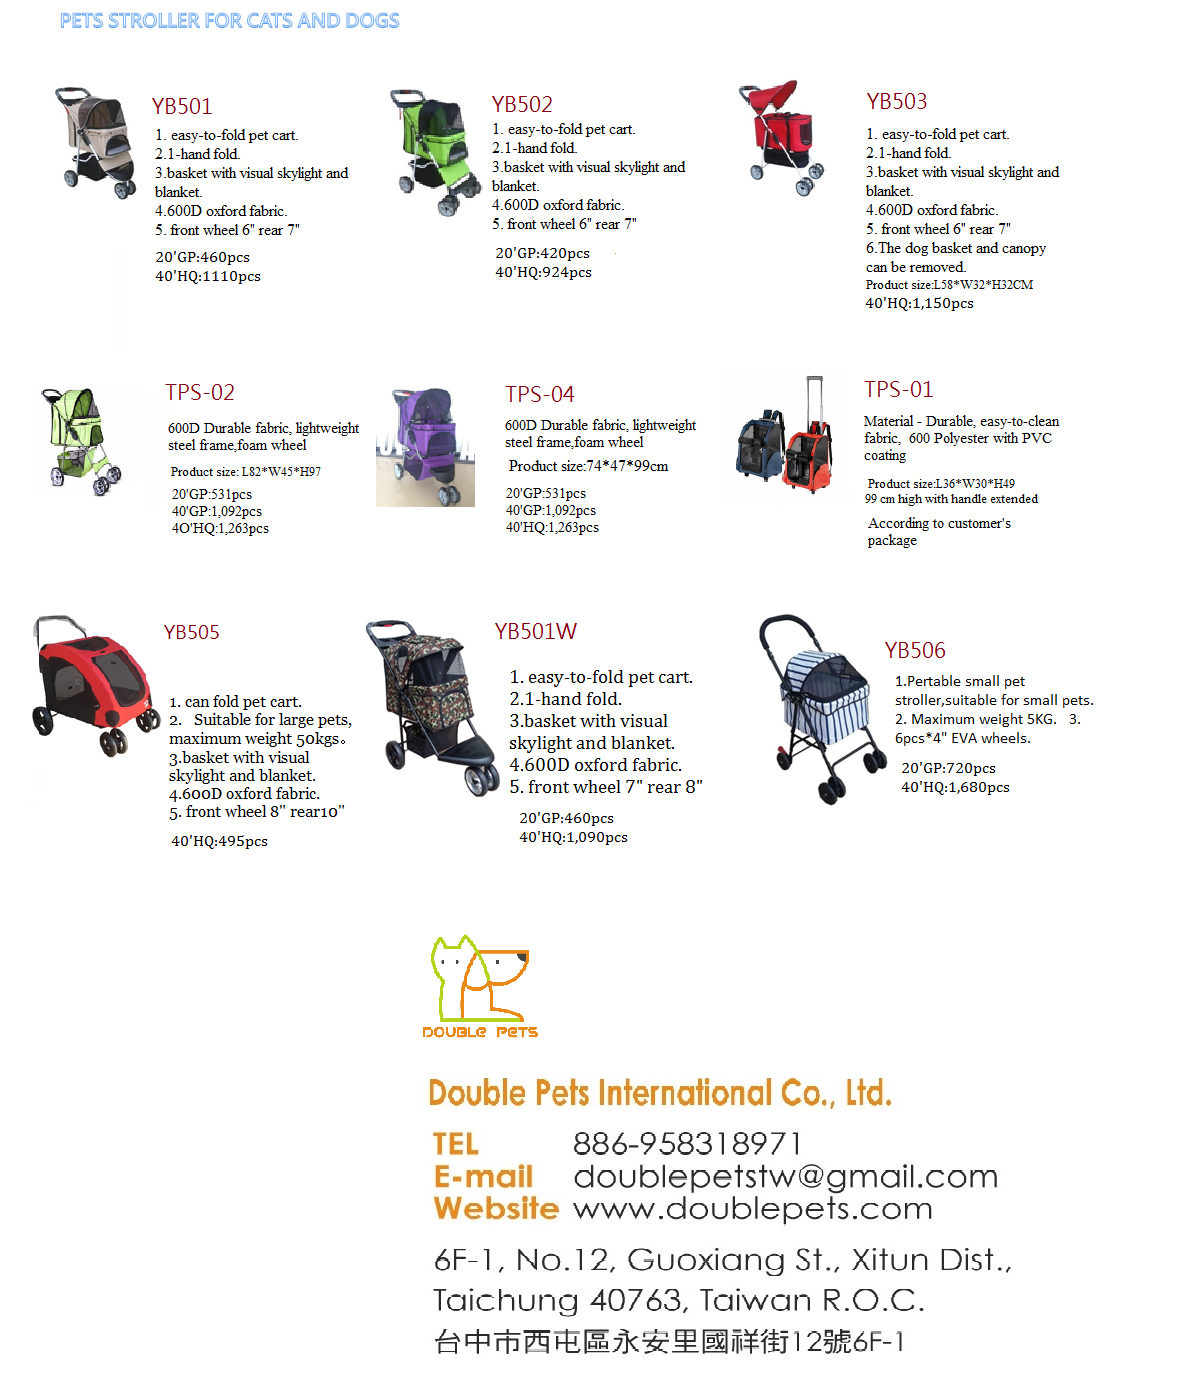 Pets stroller for cats and dogs